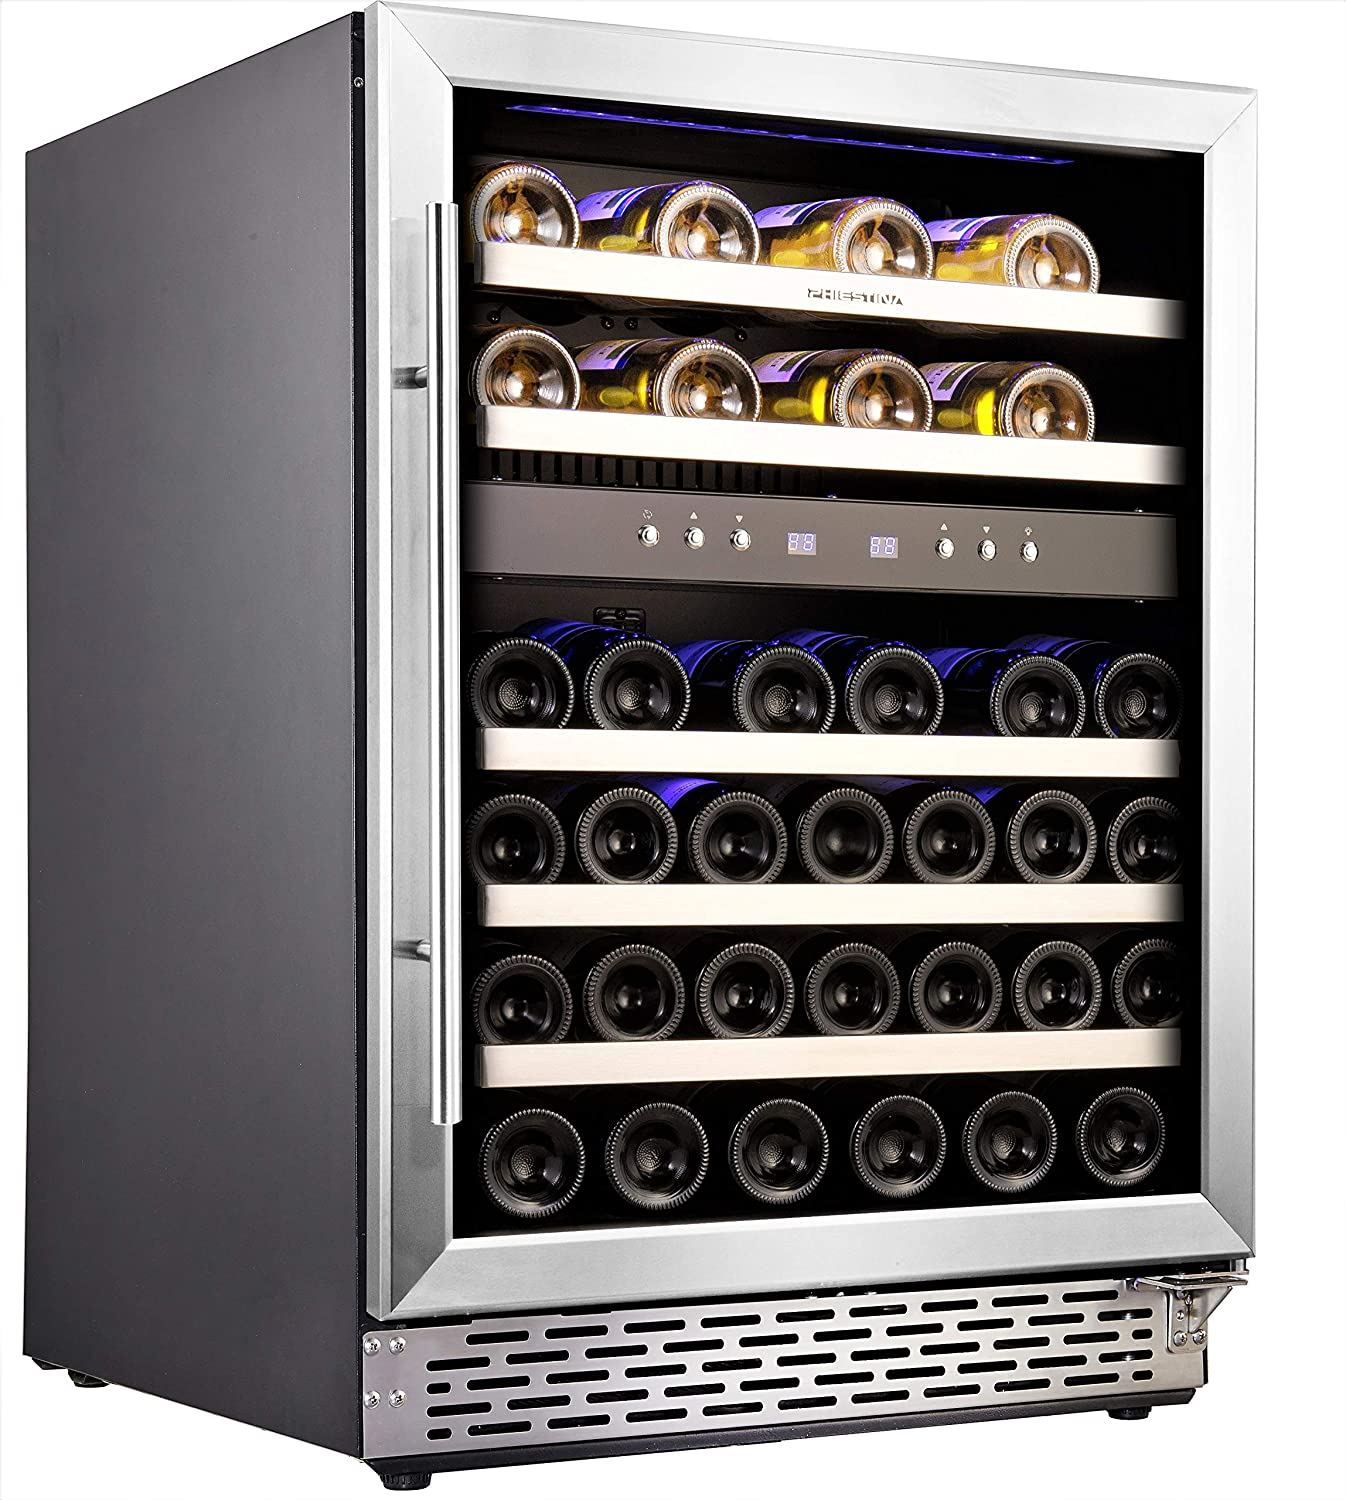 Phiestina 24'' Built-in or Free-standing 46 Bottle Wine Cooler Refrigerator. Pro Stainless Steel Frame & Door, Handle. Sliding Racks. Compressor Cooling with Press Button Temperature Setting